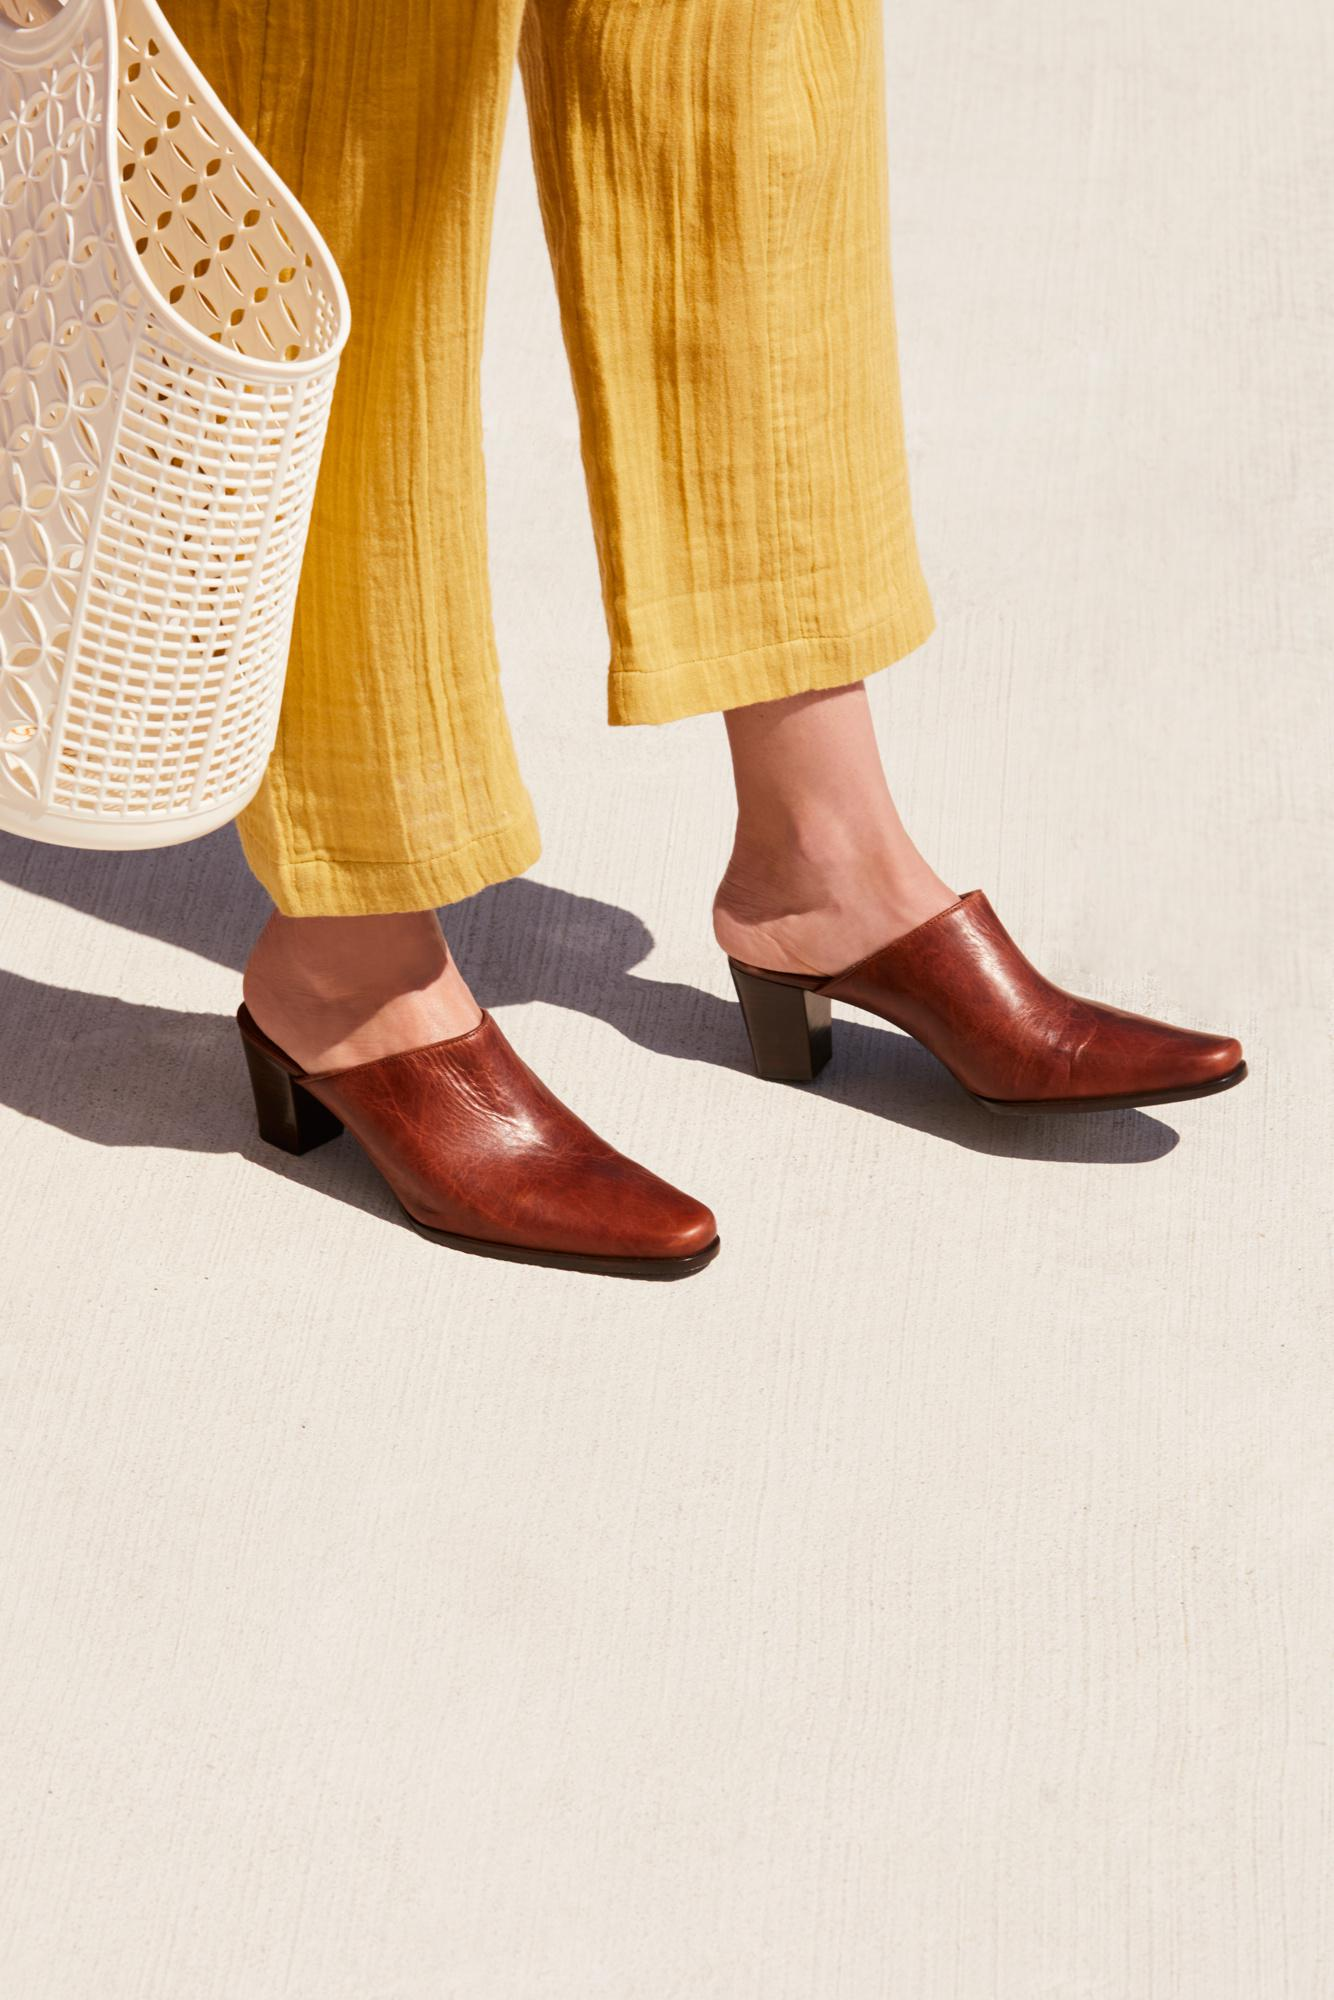 161f1c7ce6aa Lyst - Free People Gallery Mule By Coconuts By Matisse in Brown